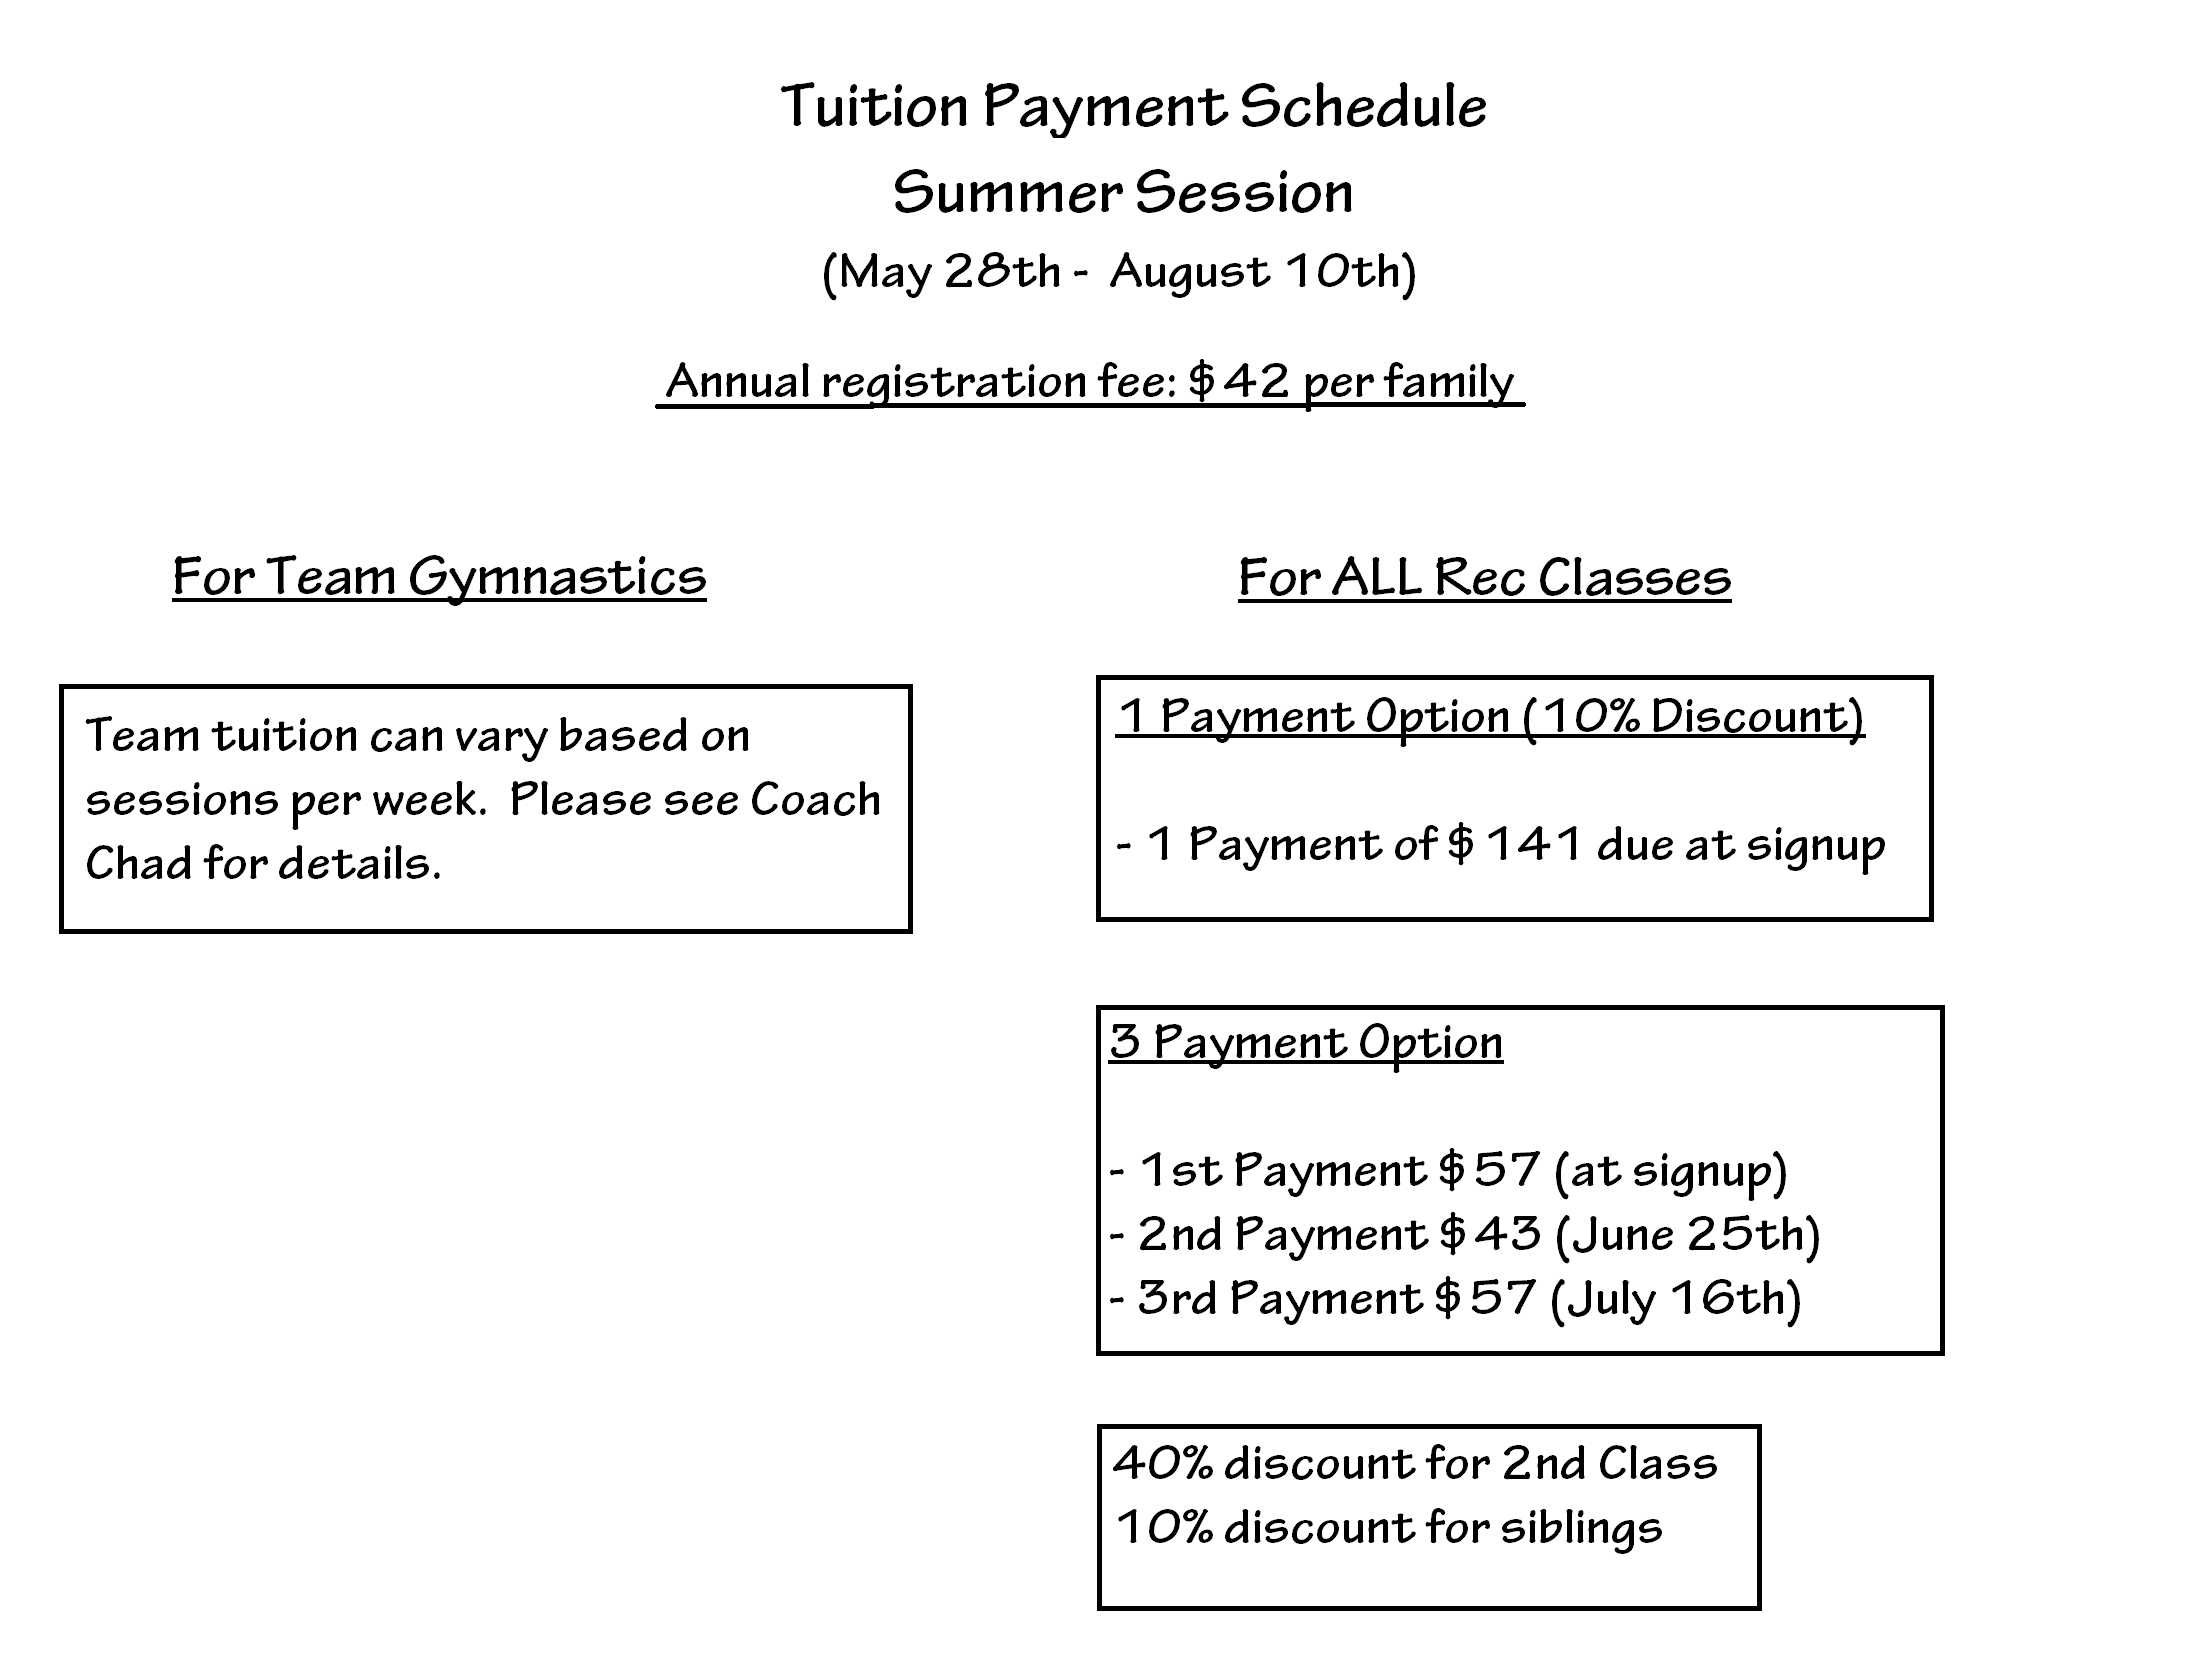 Tuition Payment - summer session